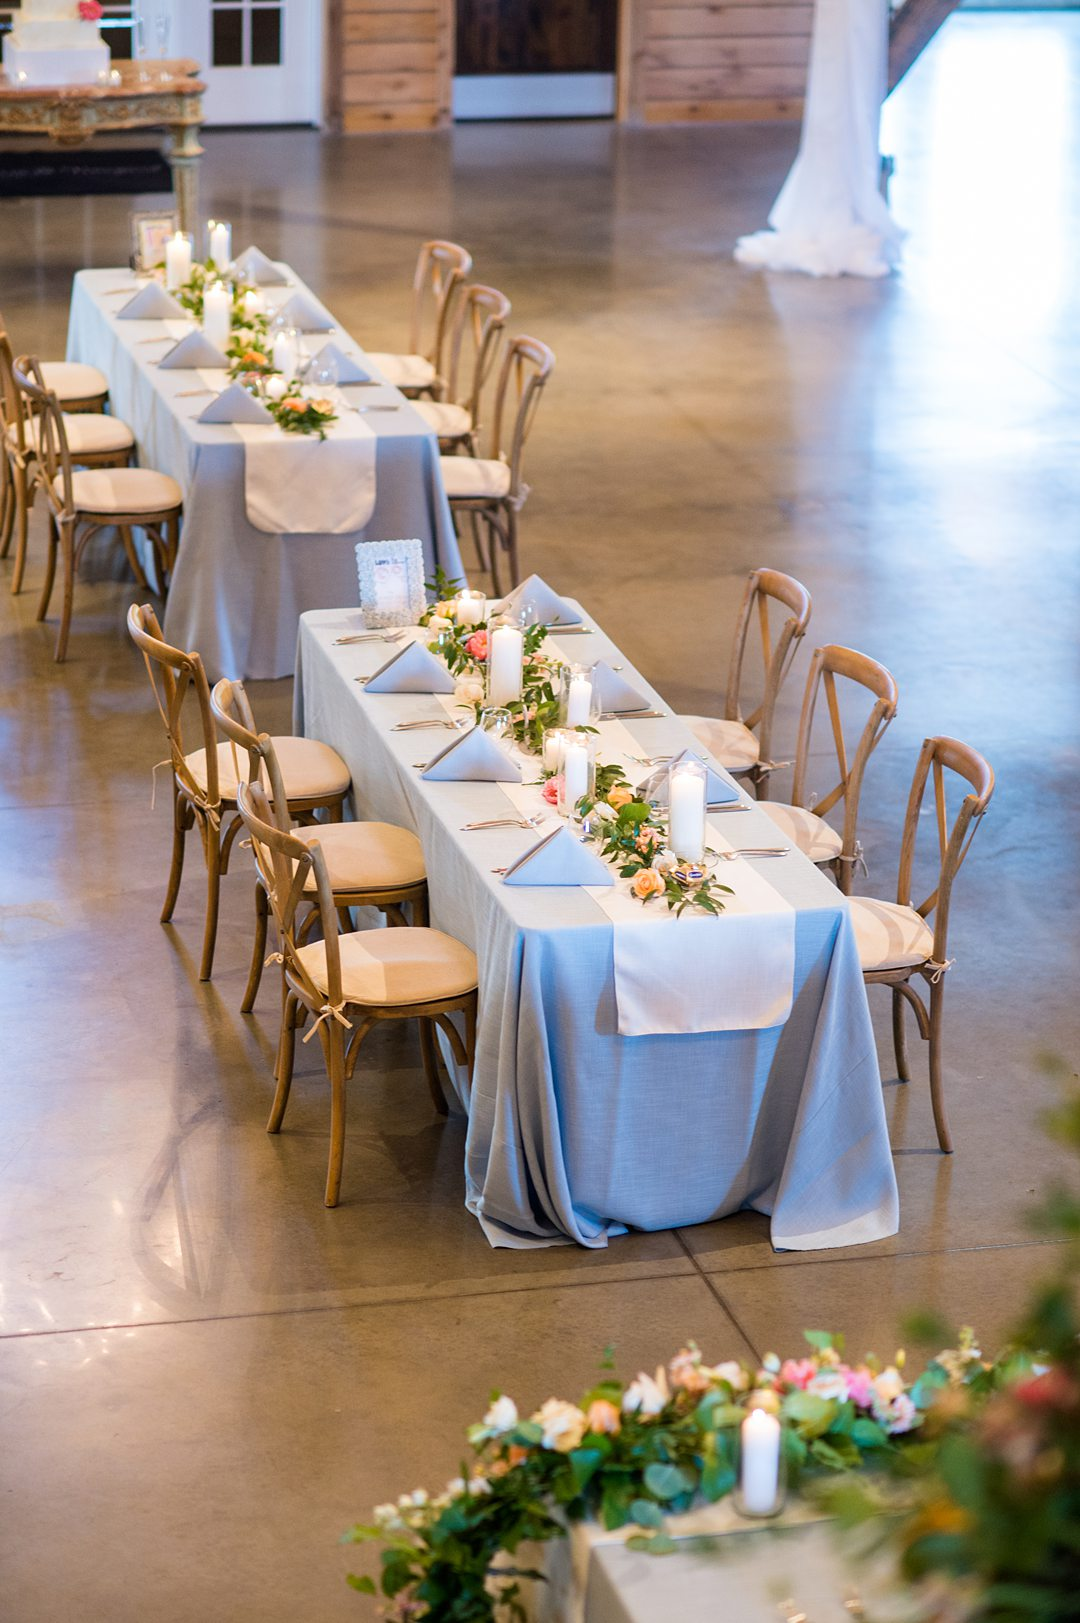 A socially distanced small wedding reception in Charlottesville, VA at the Lodge at Mount Ida farm. Photos by Mikkel Paige Photography. #mikkelpaige #covidwedding #charlottesvilleva